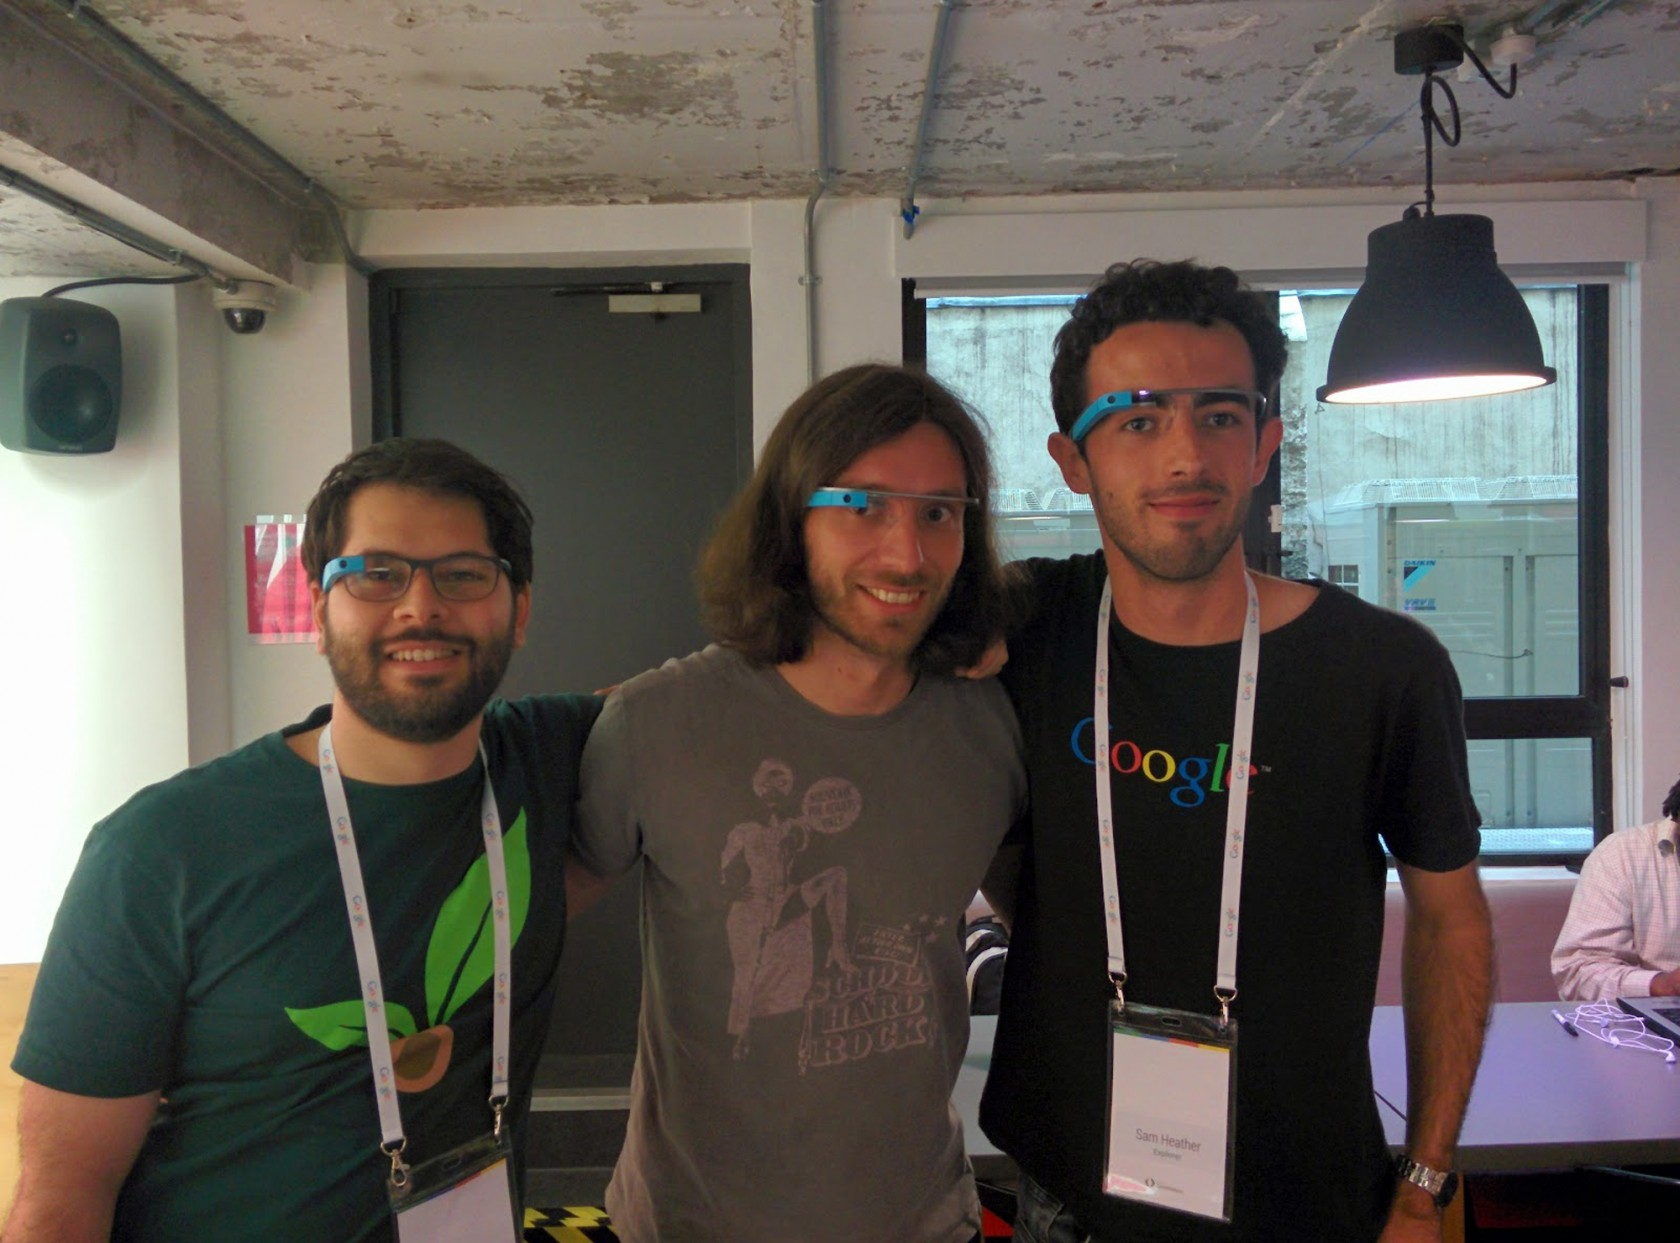 Alessio, Antonio and I - the three creators of 'Ok Glass, Where is the Space Station'